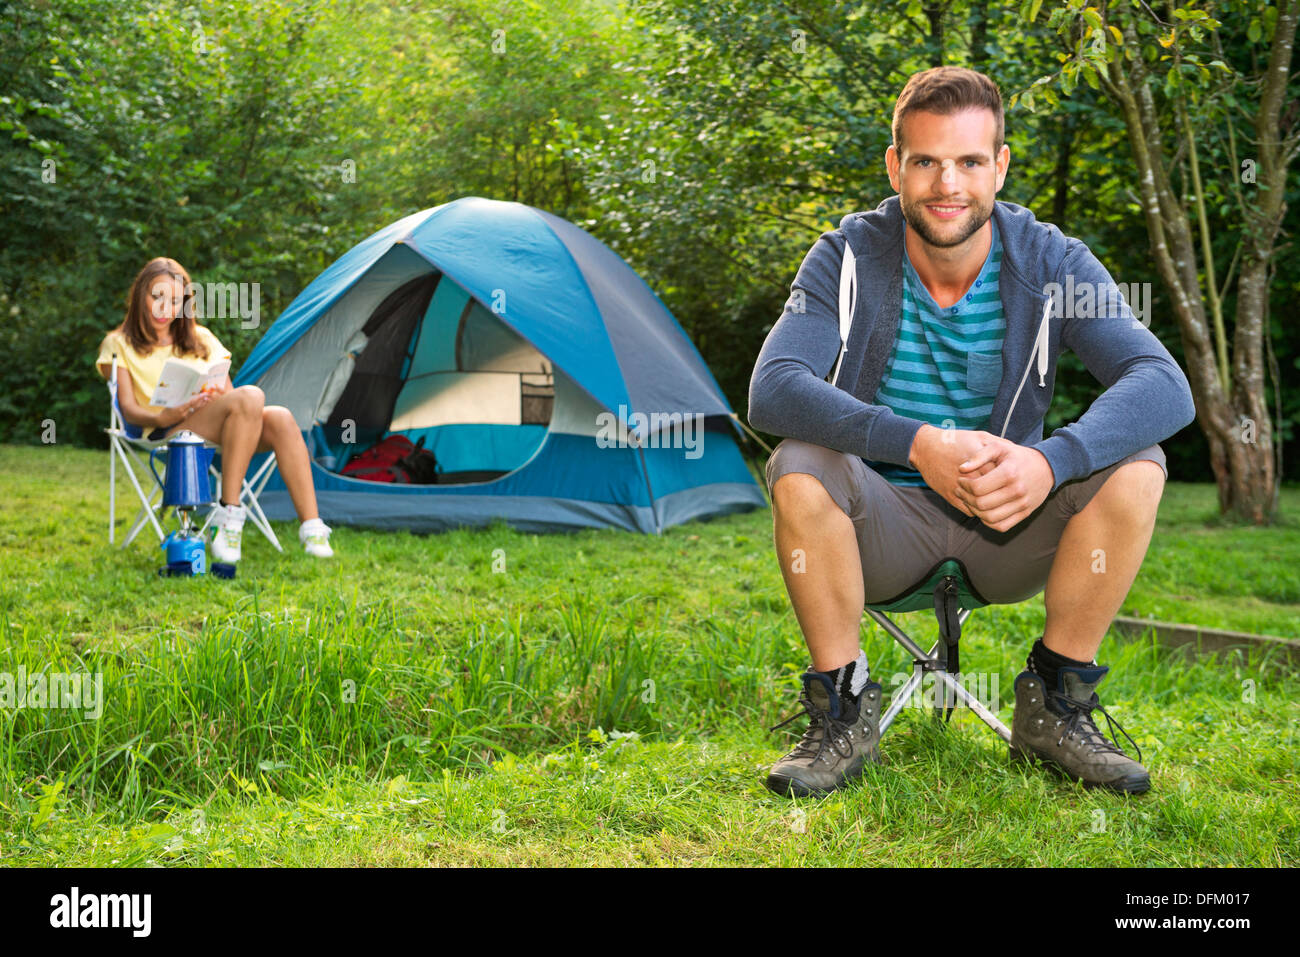 A young couple relaxing in front of a tent - Stock Image